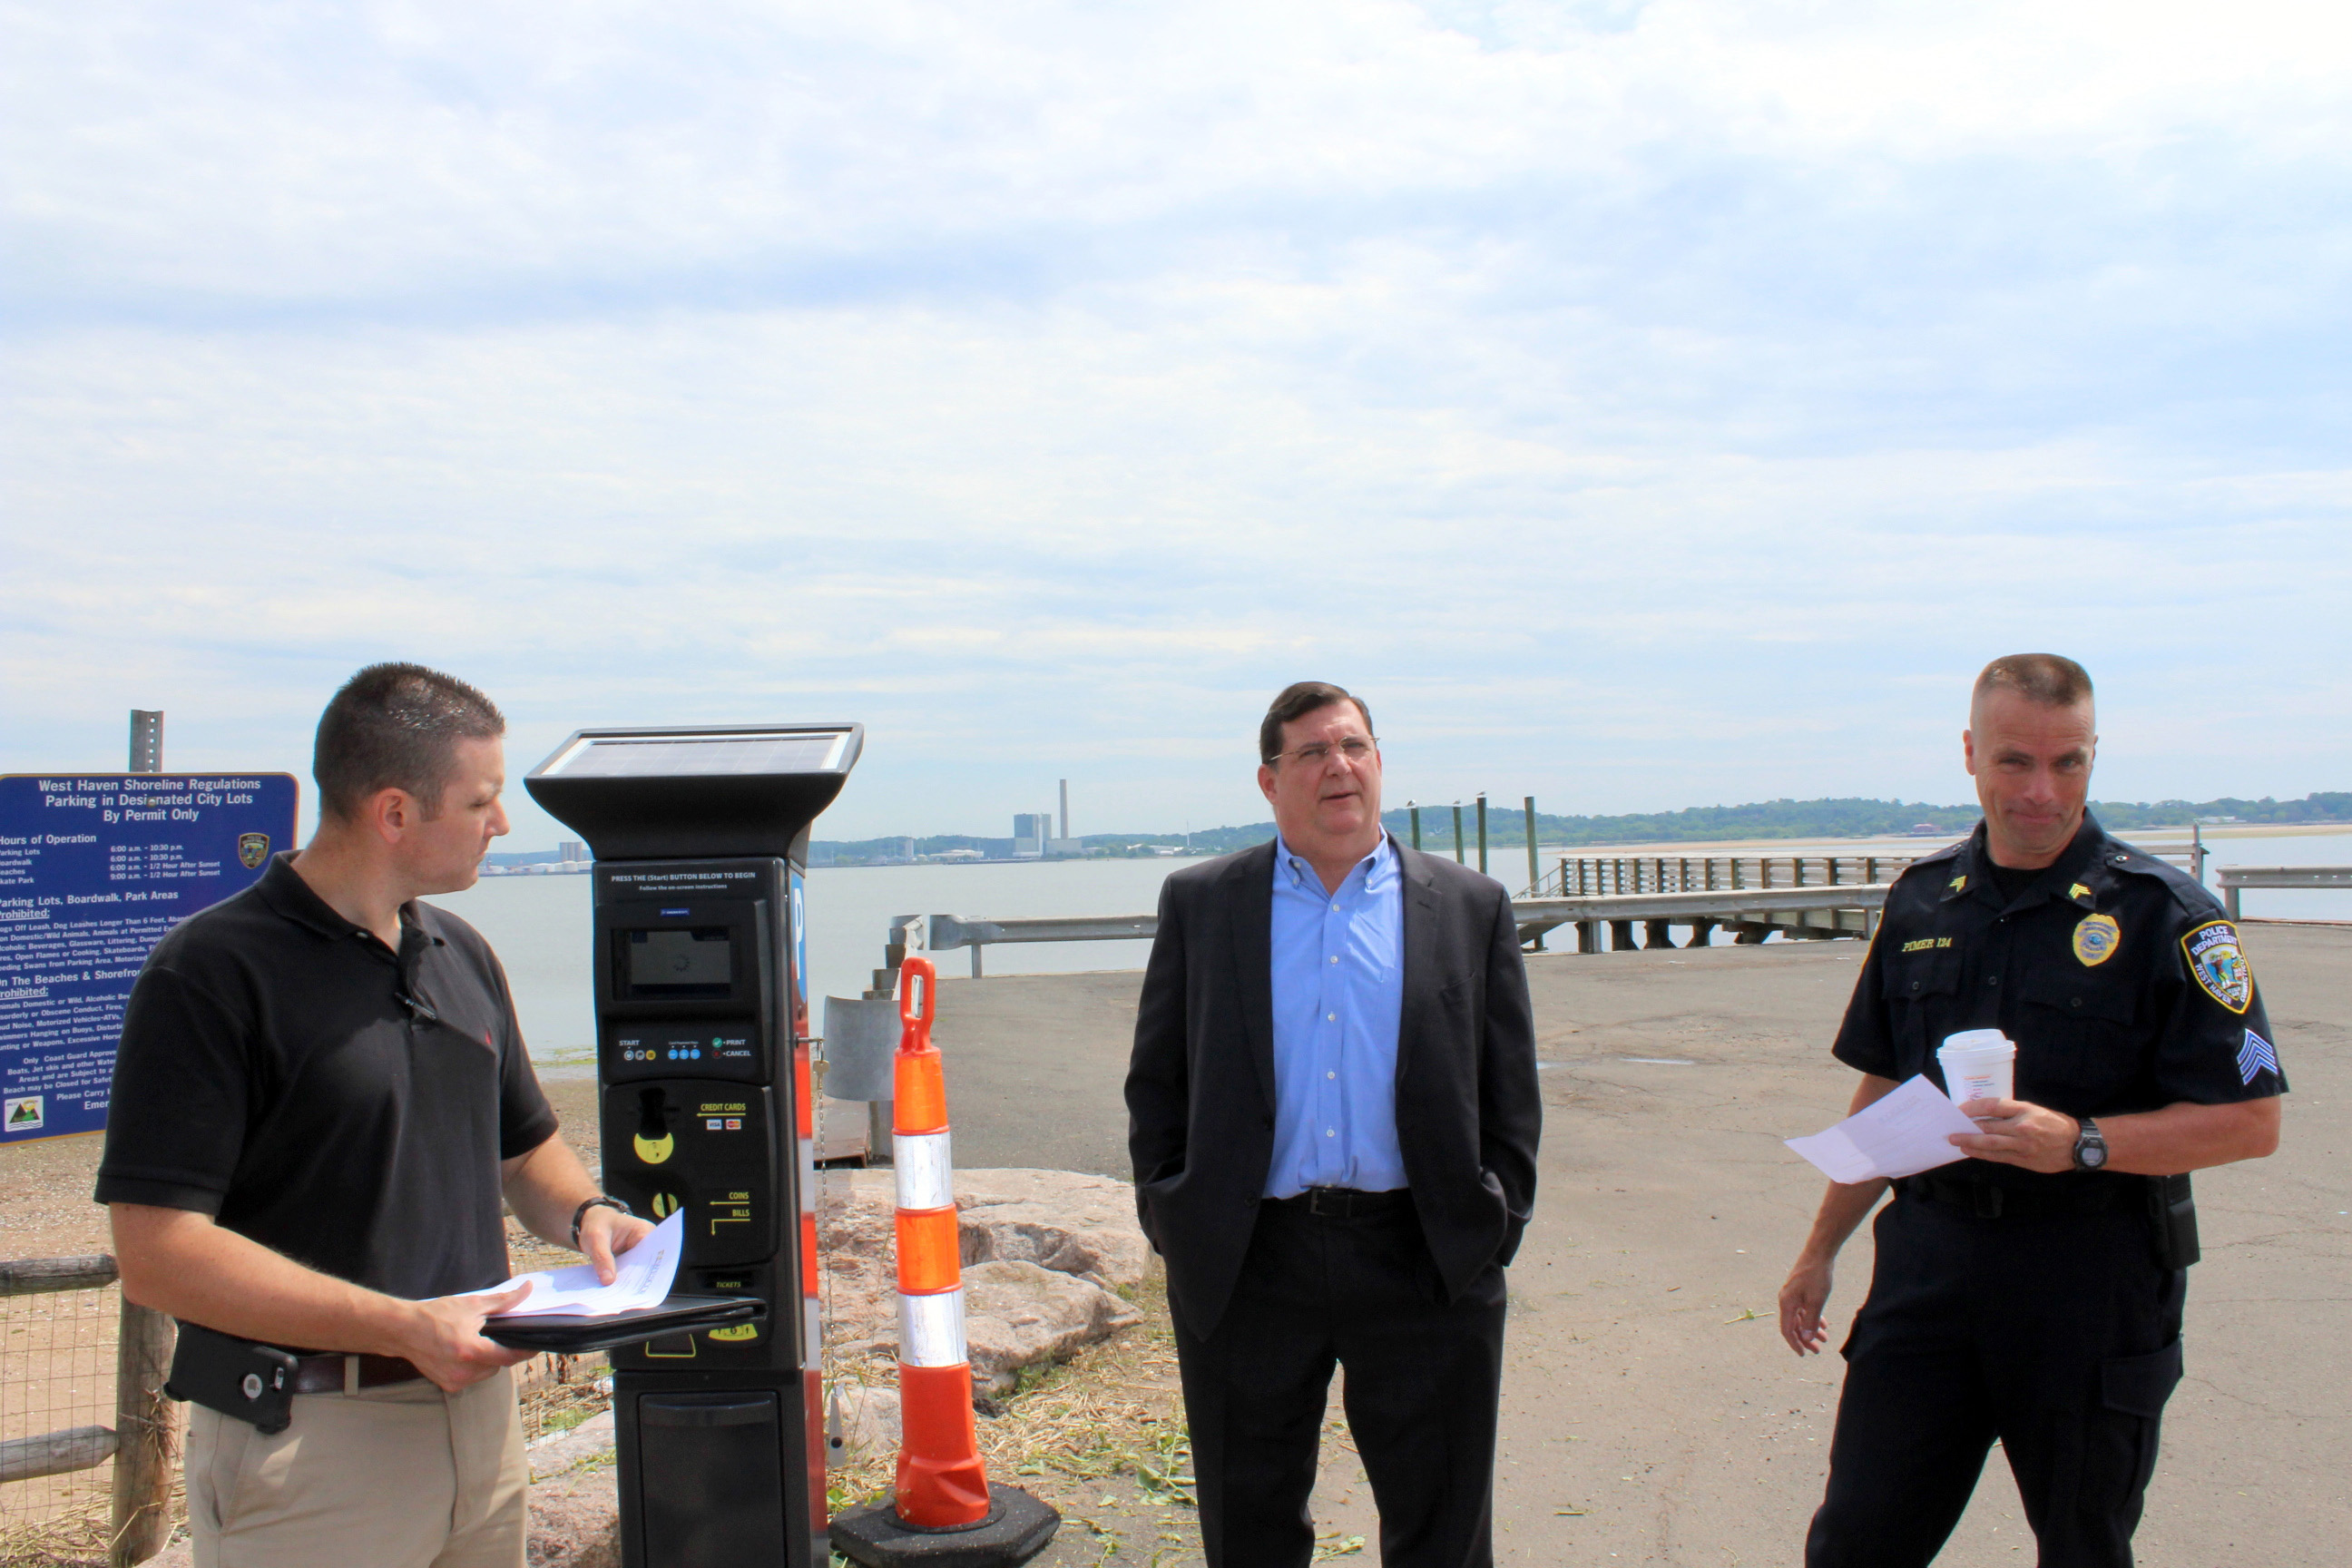 Additional meters installed in beach parking lots